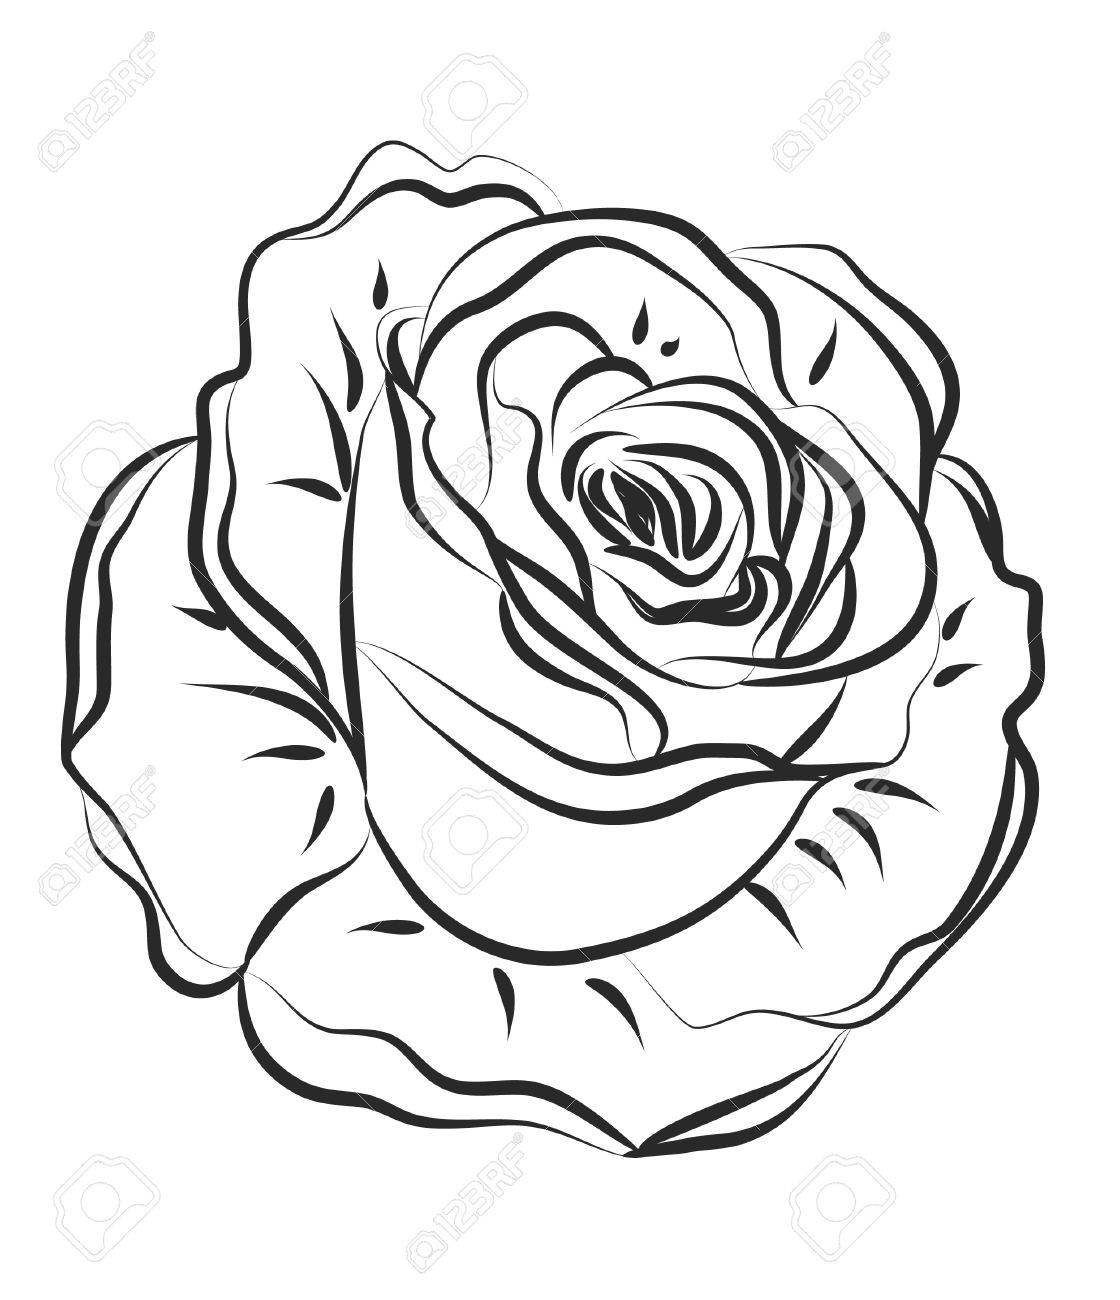 Rose Silhouette with brushes Stock Vector - 13042070